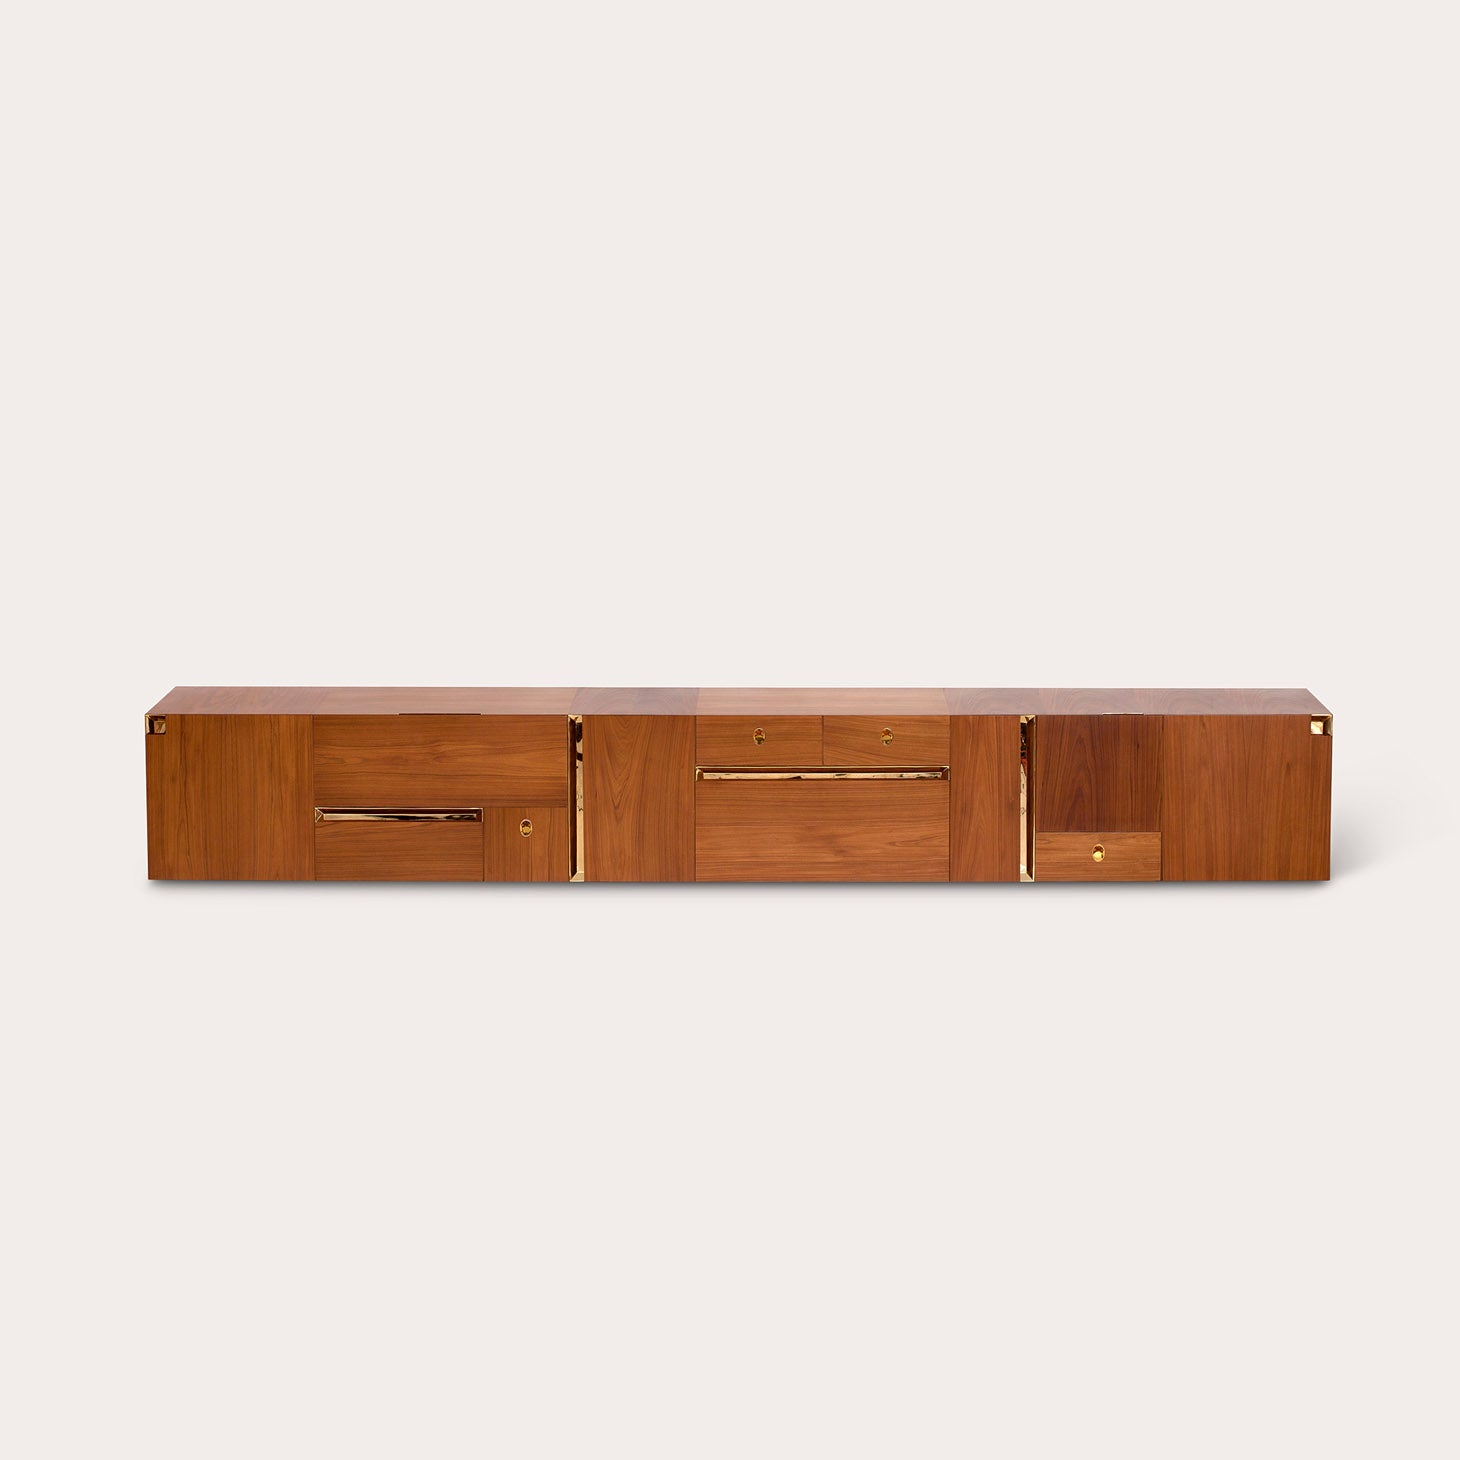 Isay Storage Isay Weinfeld Designer Furniture Sku: 003-220-10002